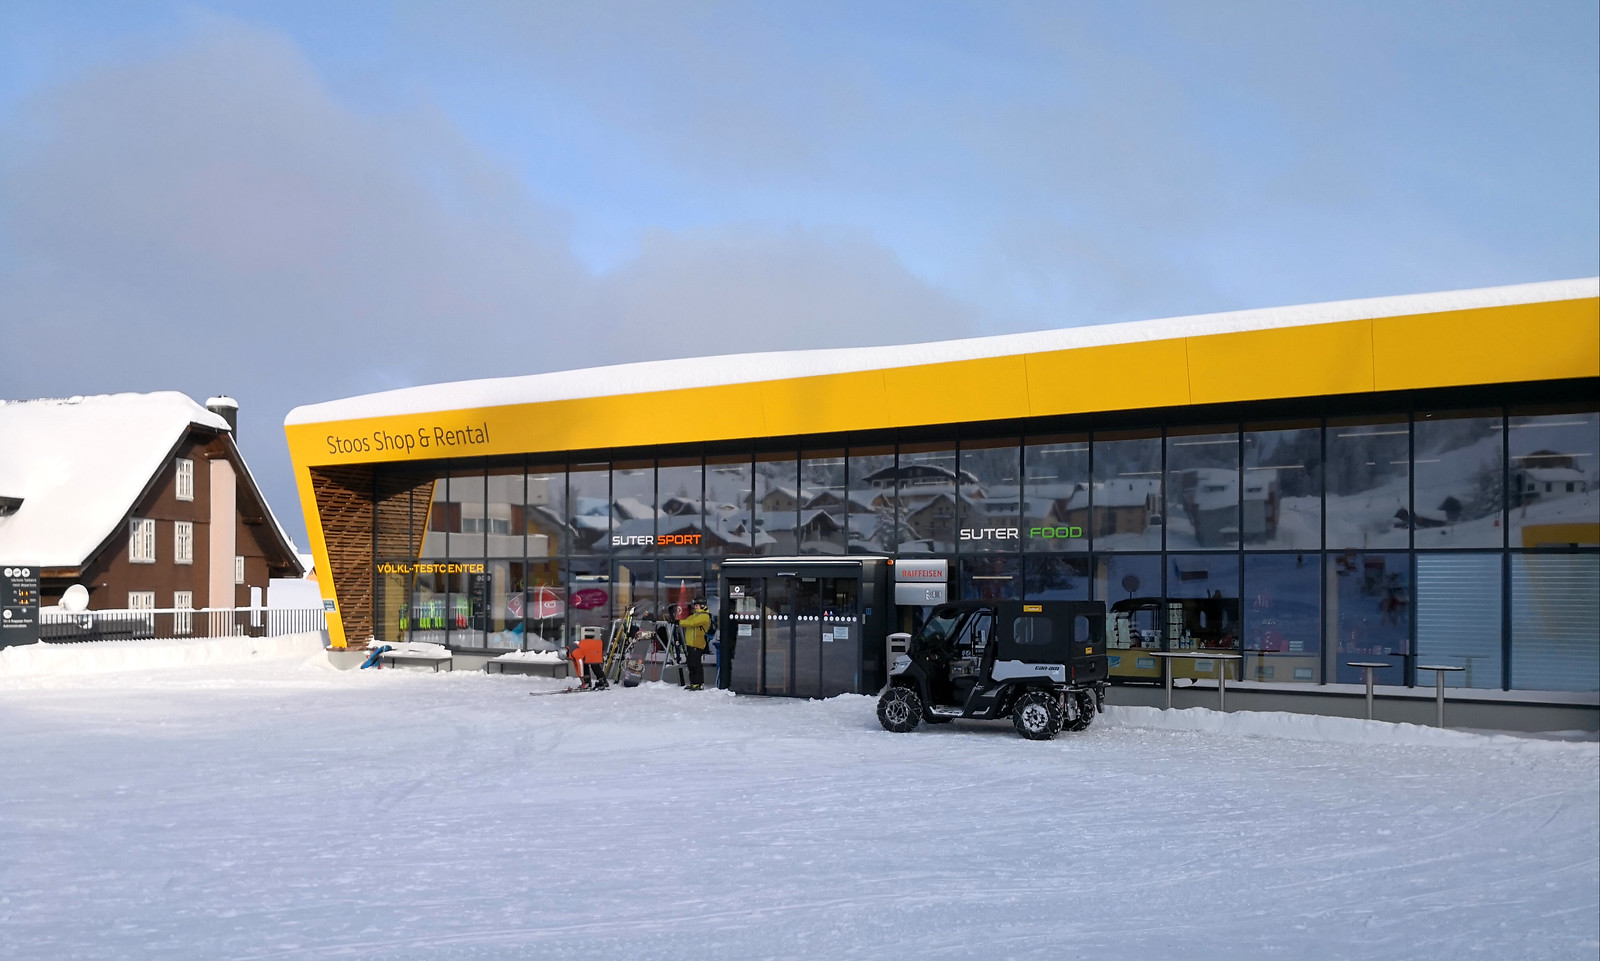 Shop and rental centre